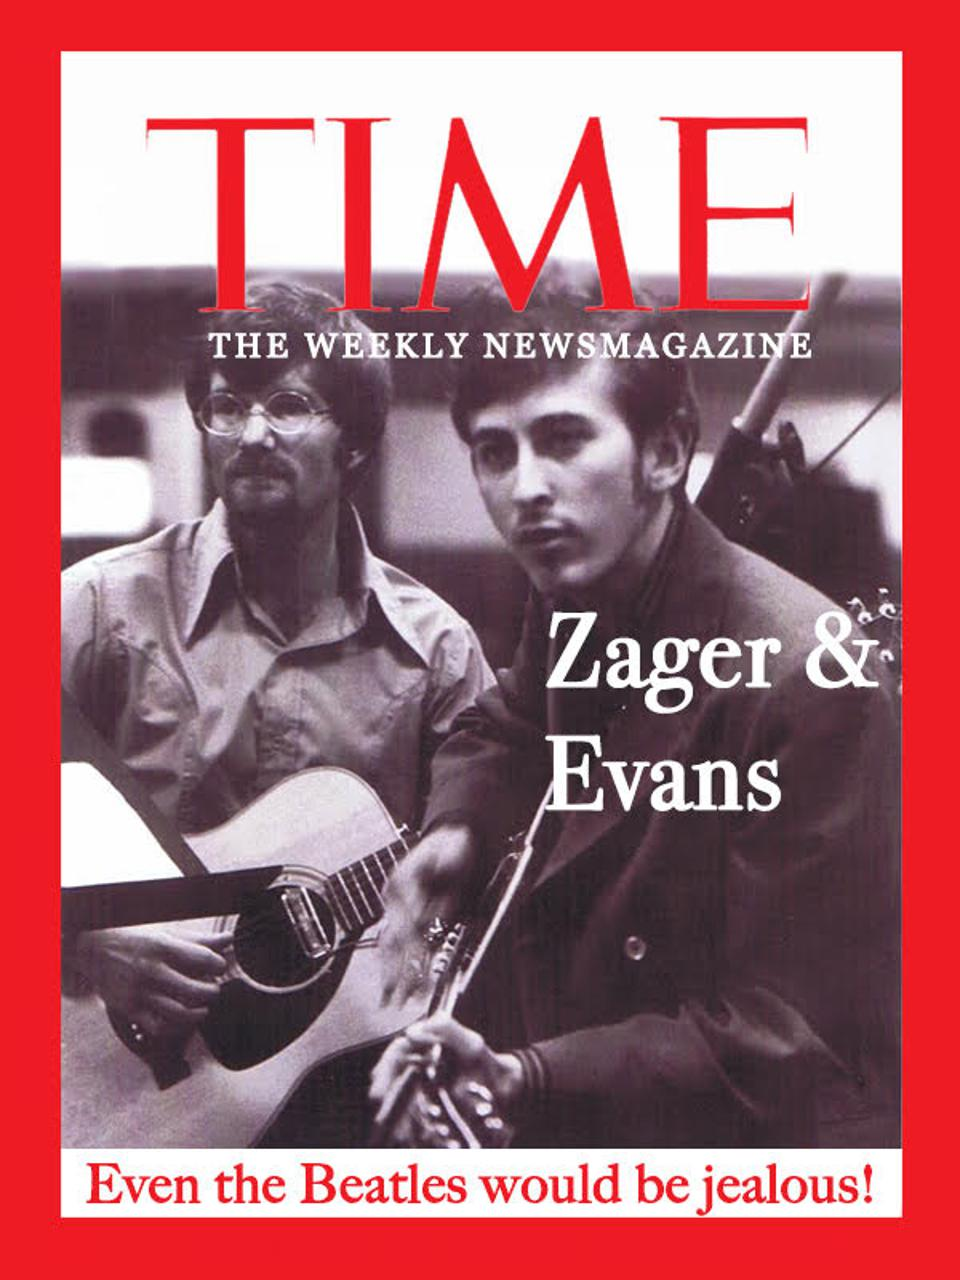 Zager & Evans on the cover of TIME in 1969.